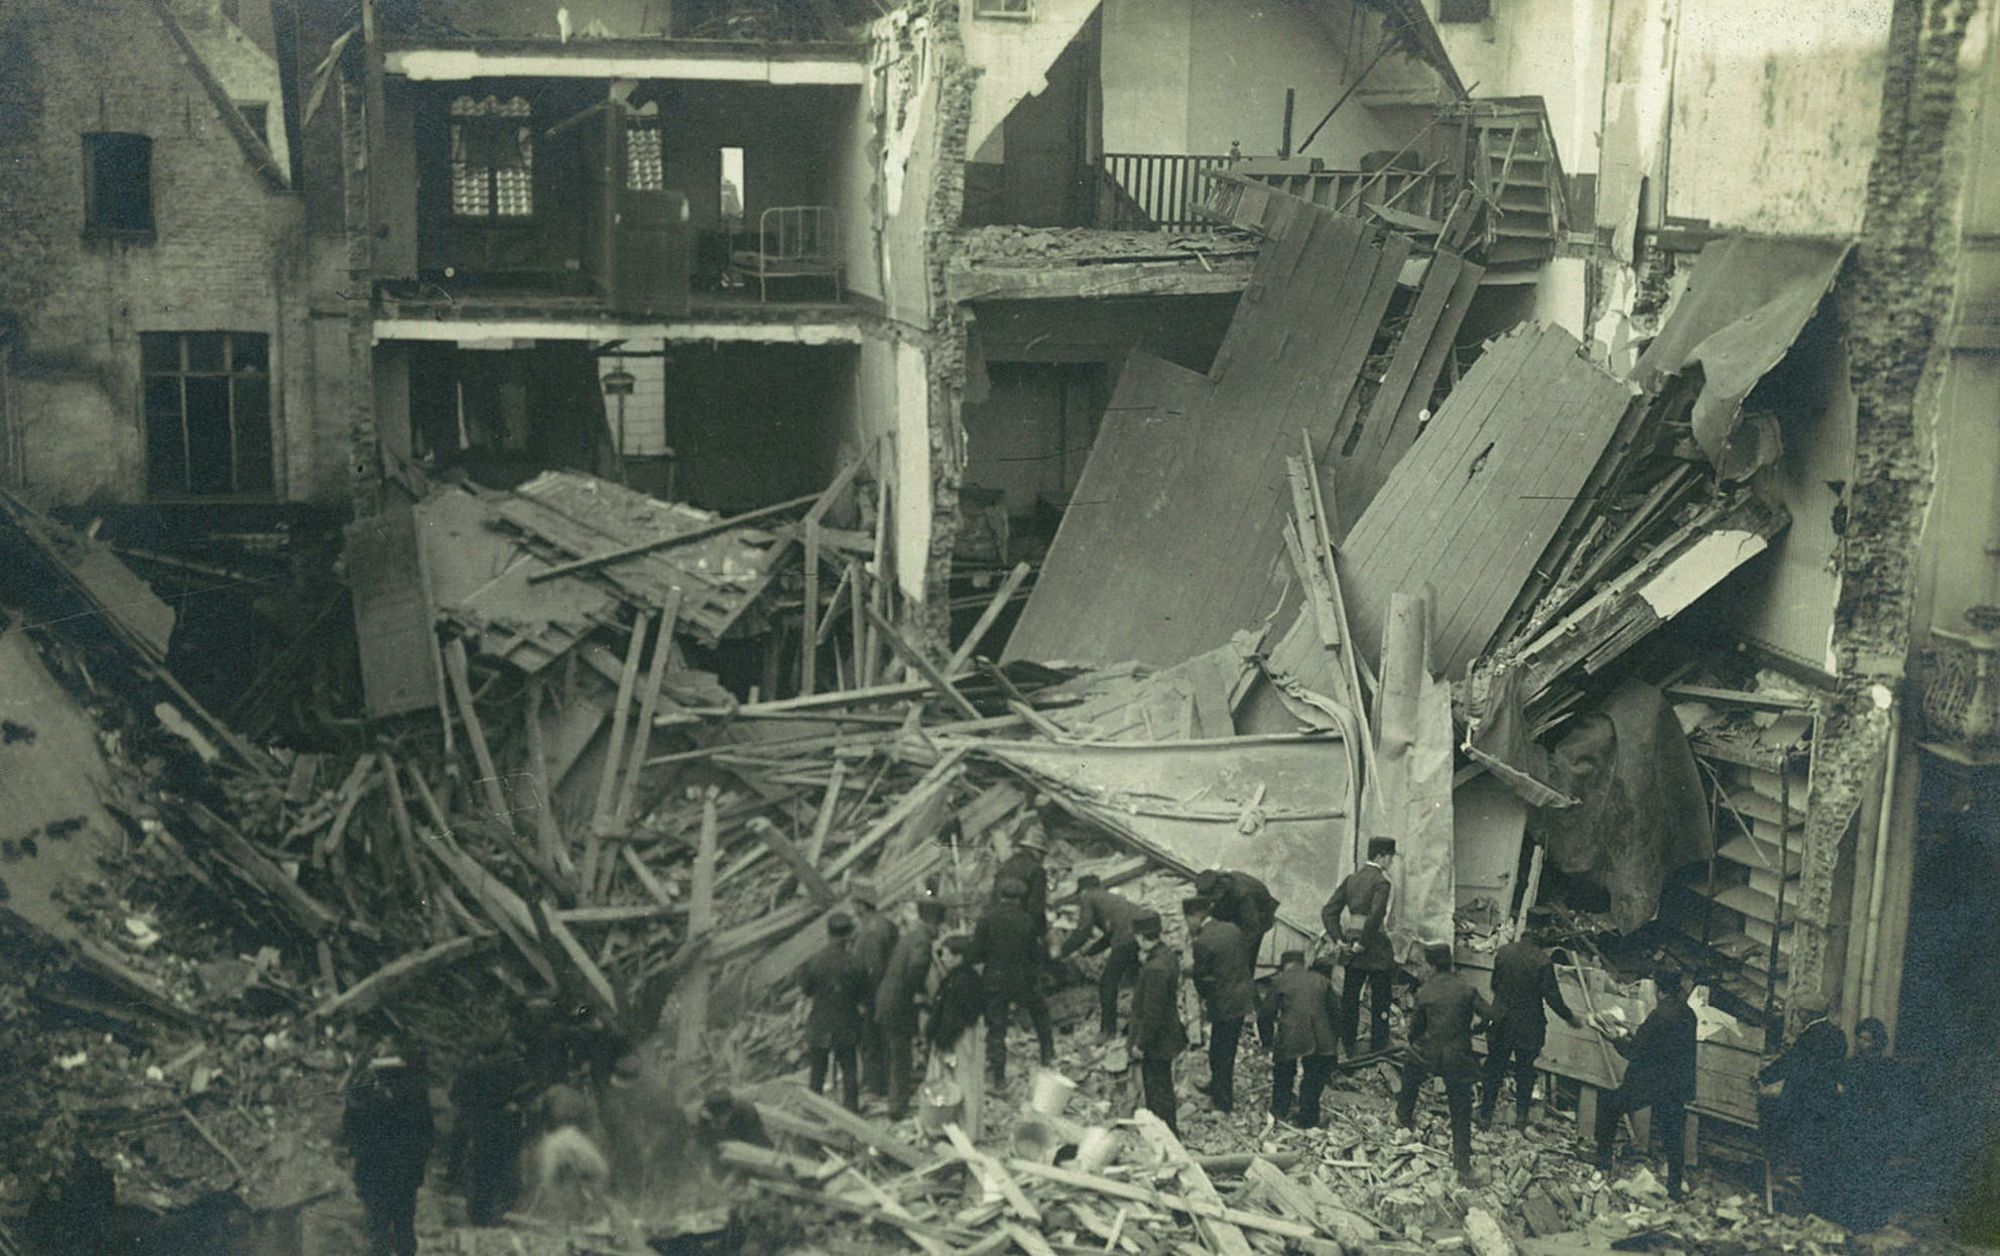 Albums Ghyoot 4_062 Rijselsestraat bombardement 17.08.1917 WO I